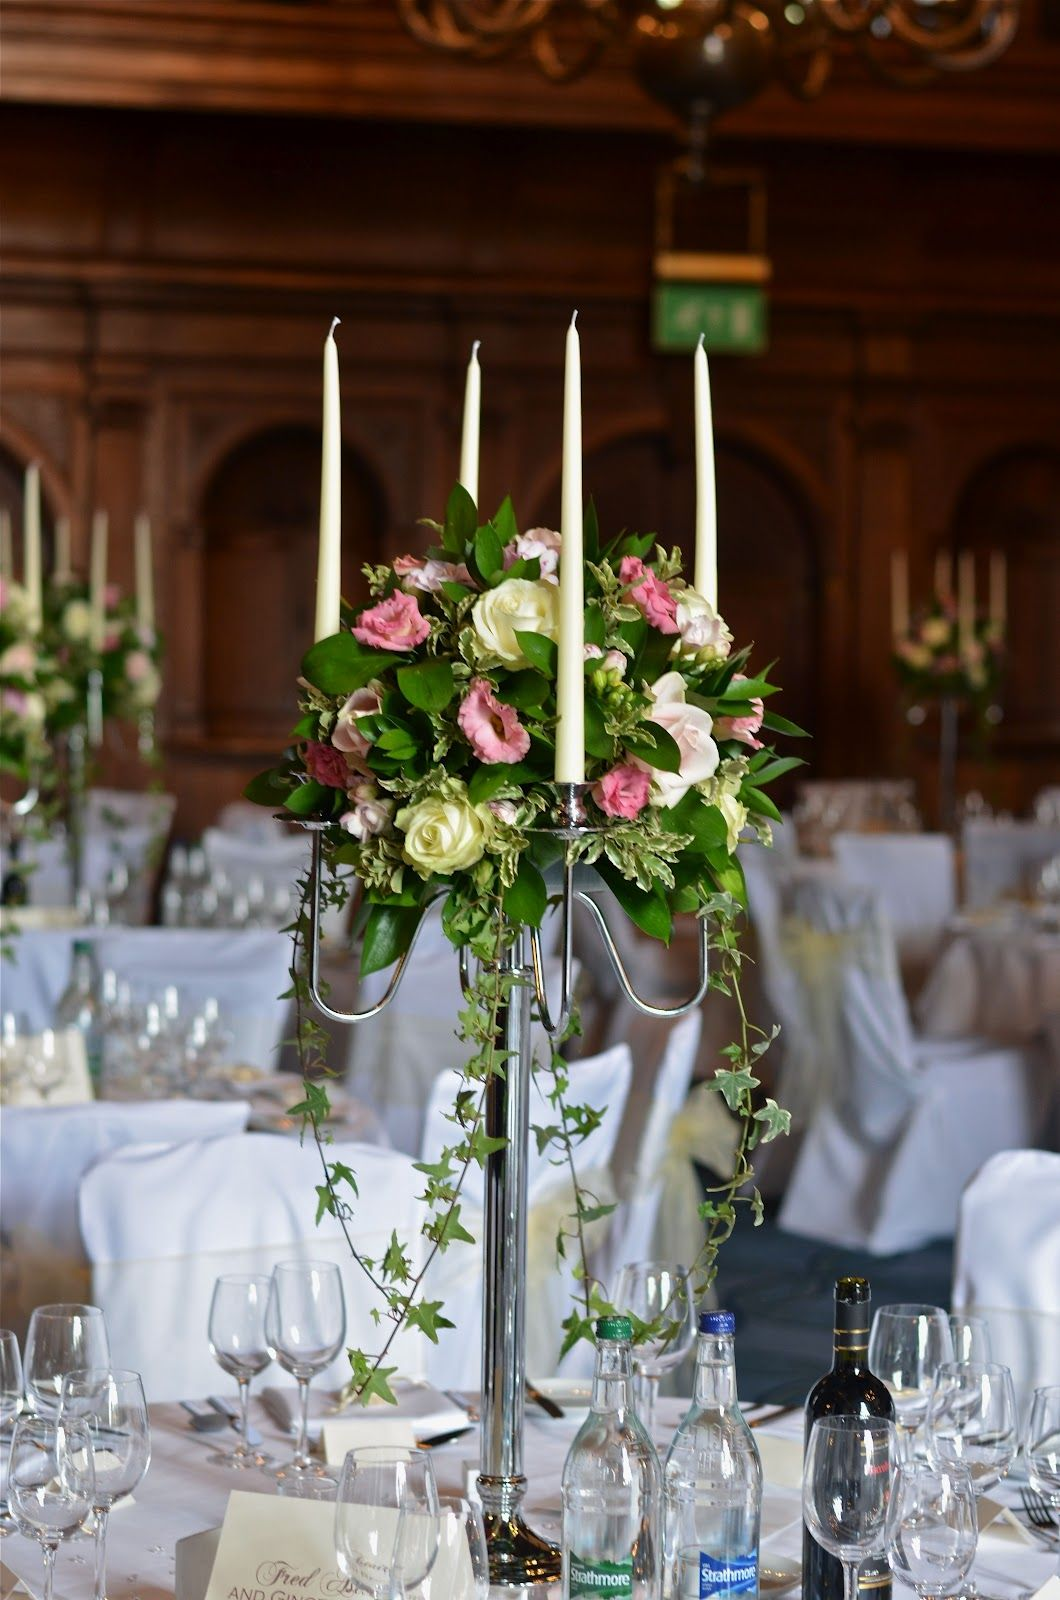 Wedding Flowers Blog: Kate's Easter Wedding Flowers - Rhinefield House  Love the ivies in this wedding arrangement! Should be made with thistle in a tartan wedding of course.